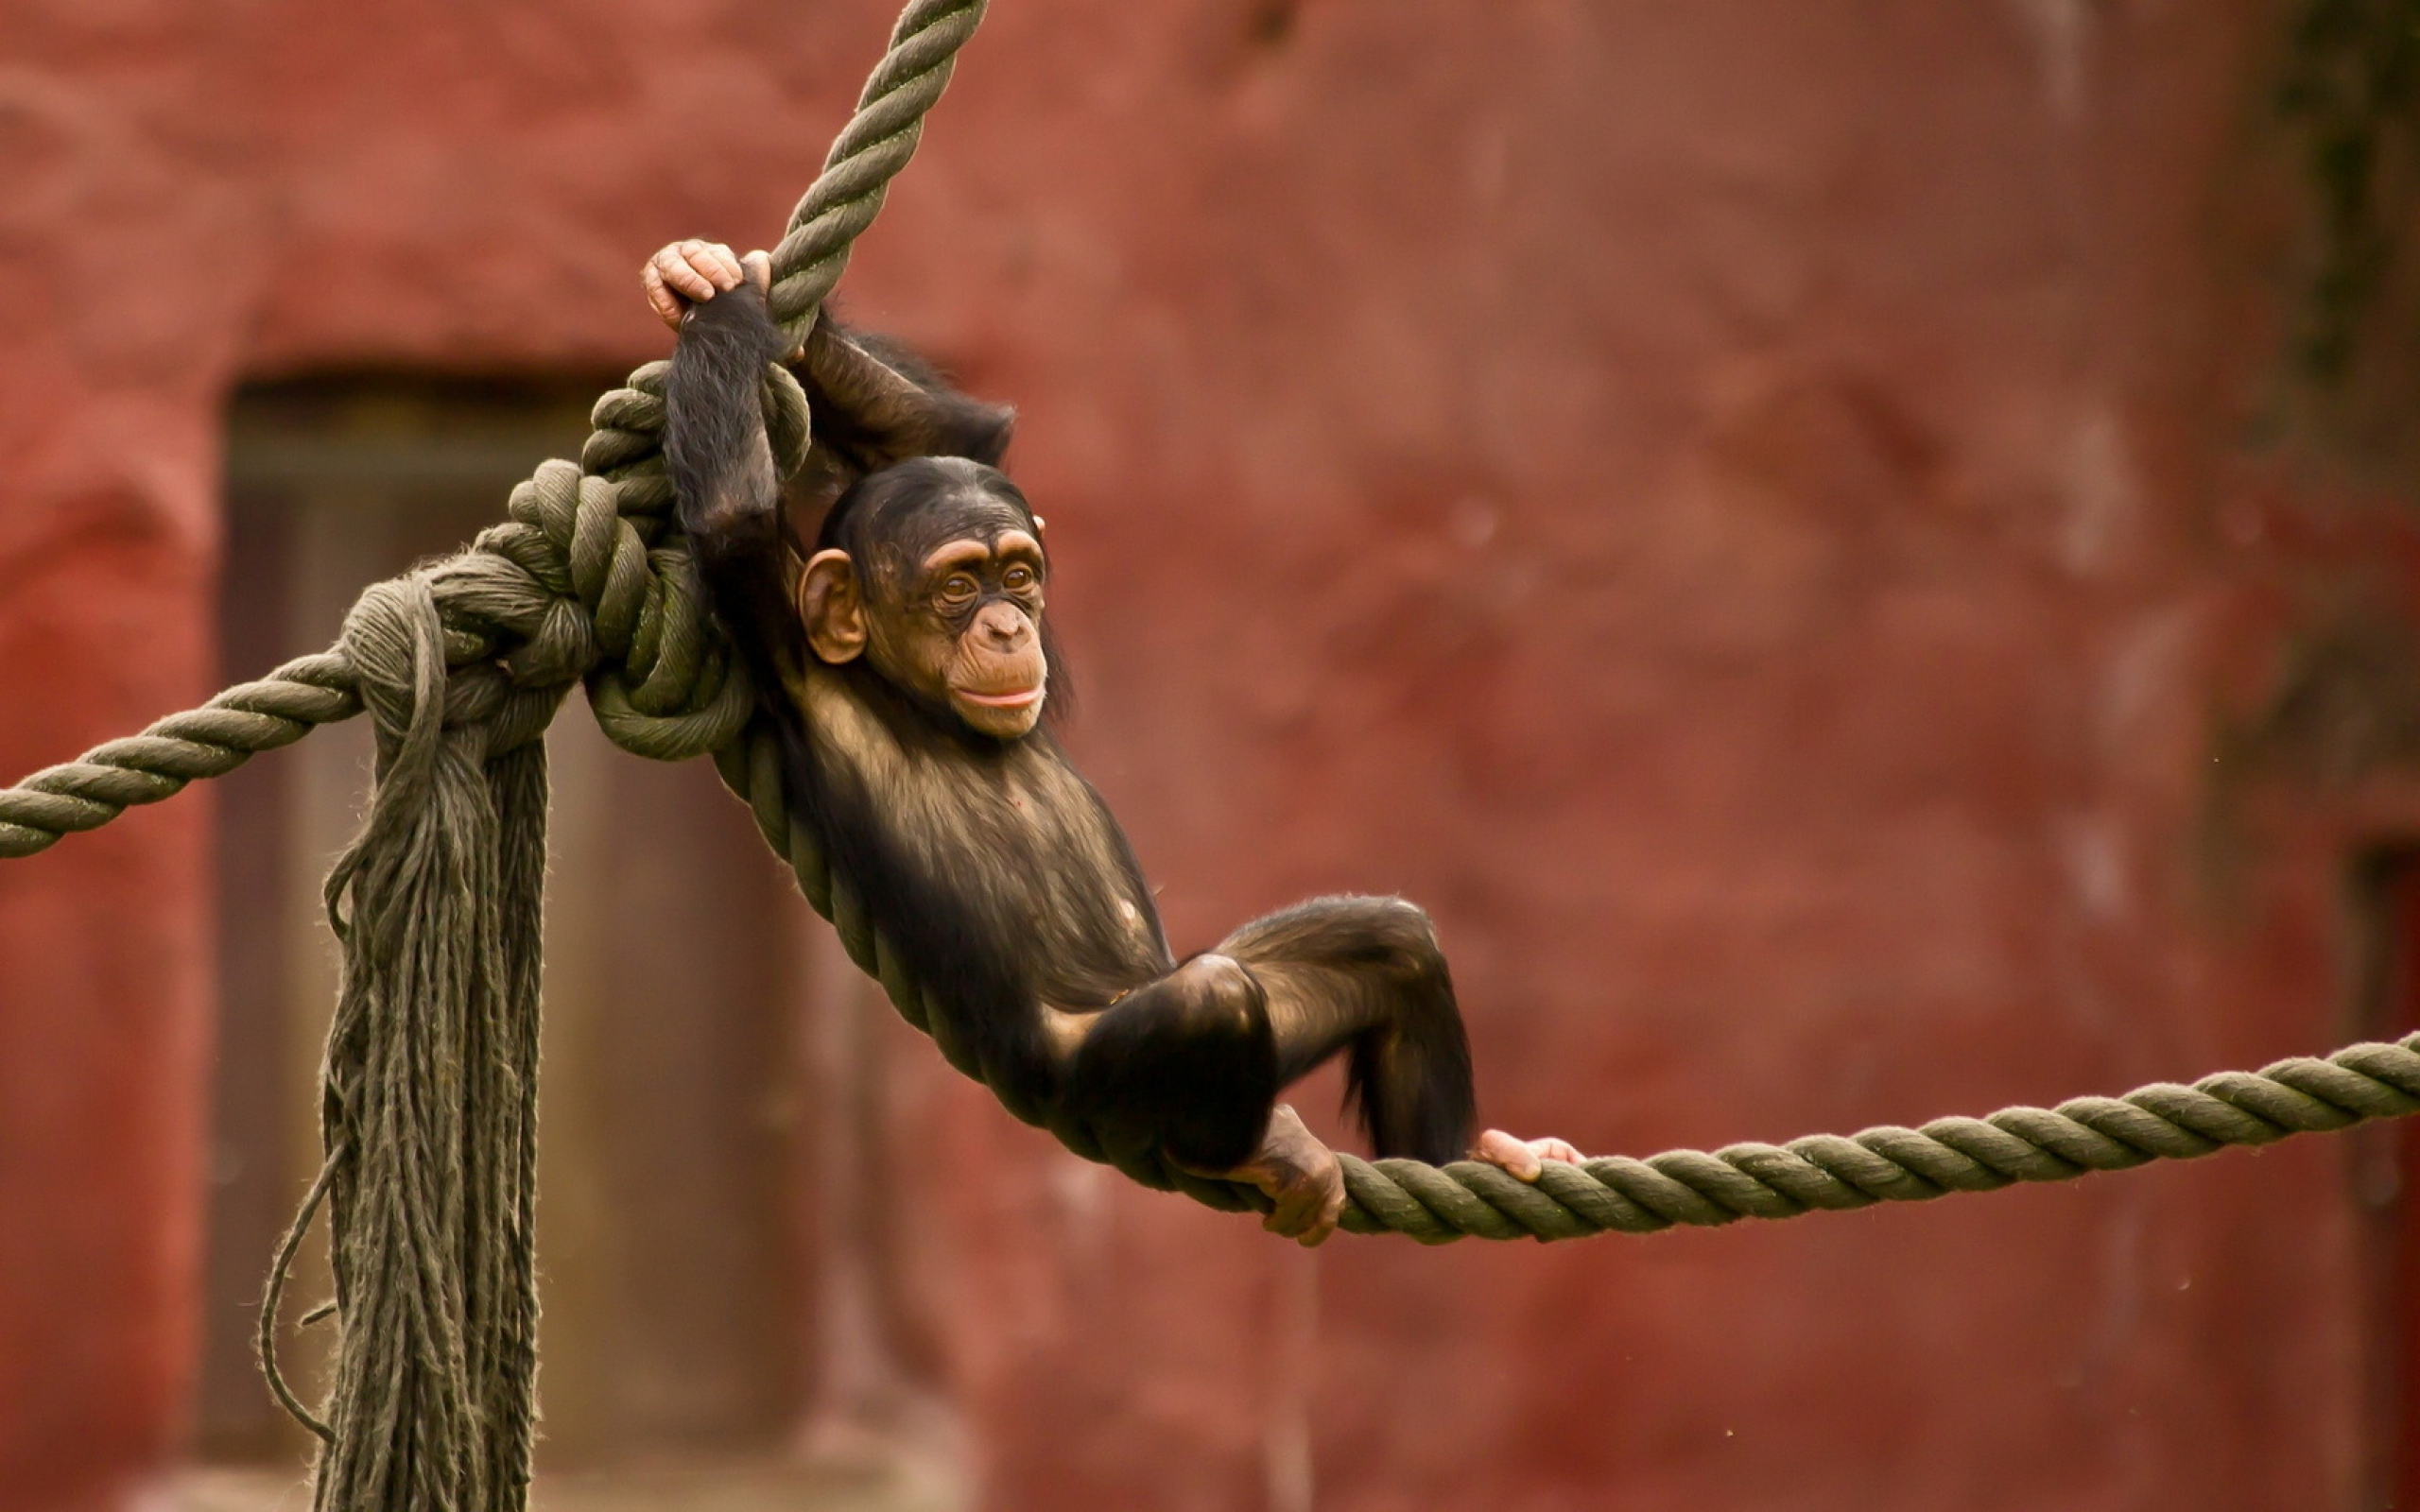 Chimpanzee Chilling On A Rope Wallpapers